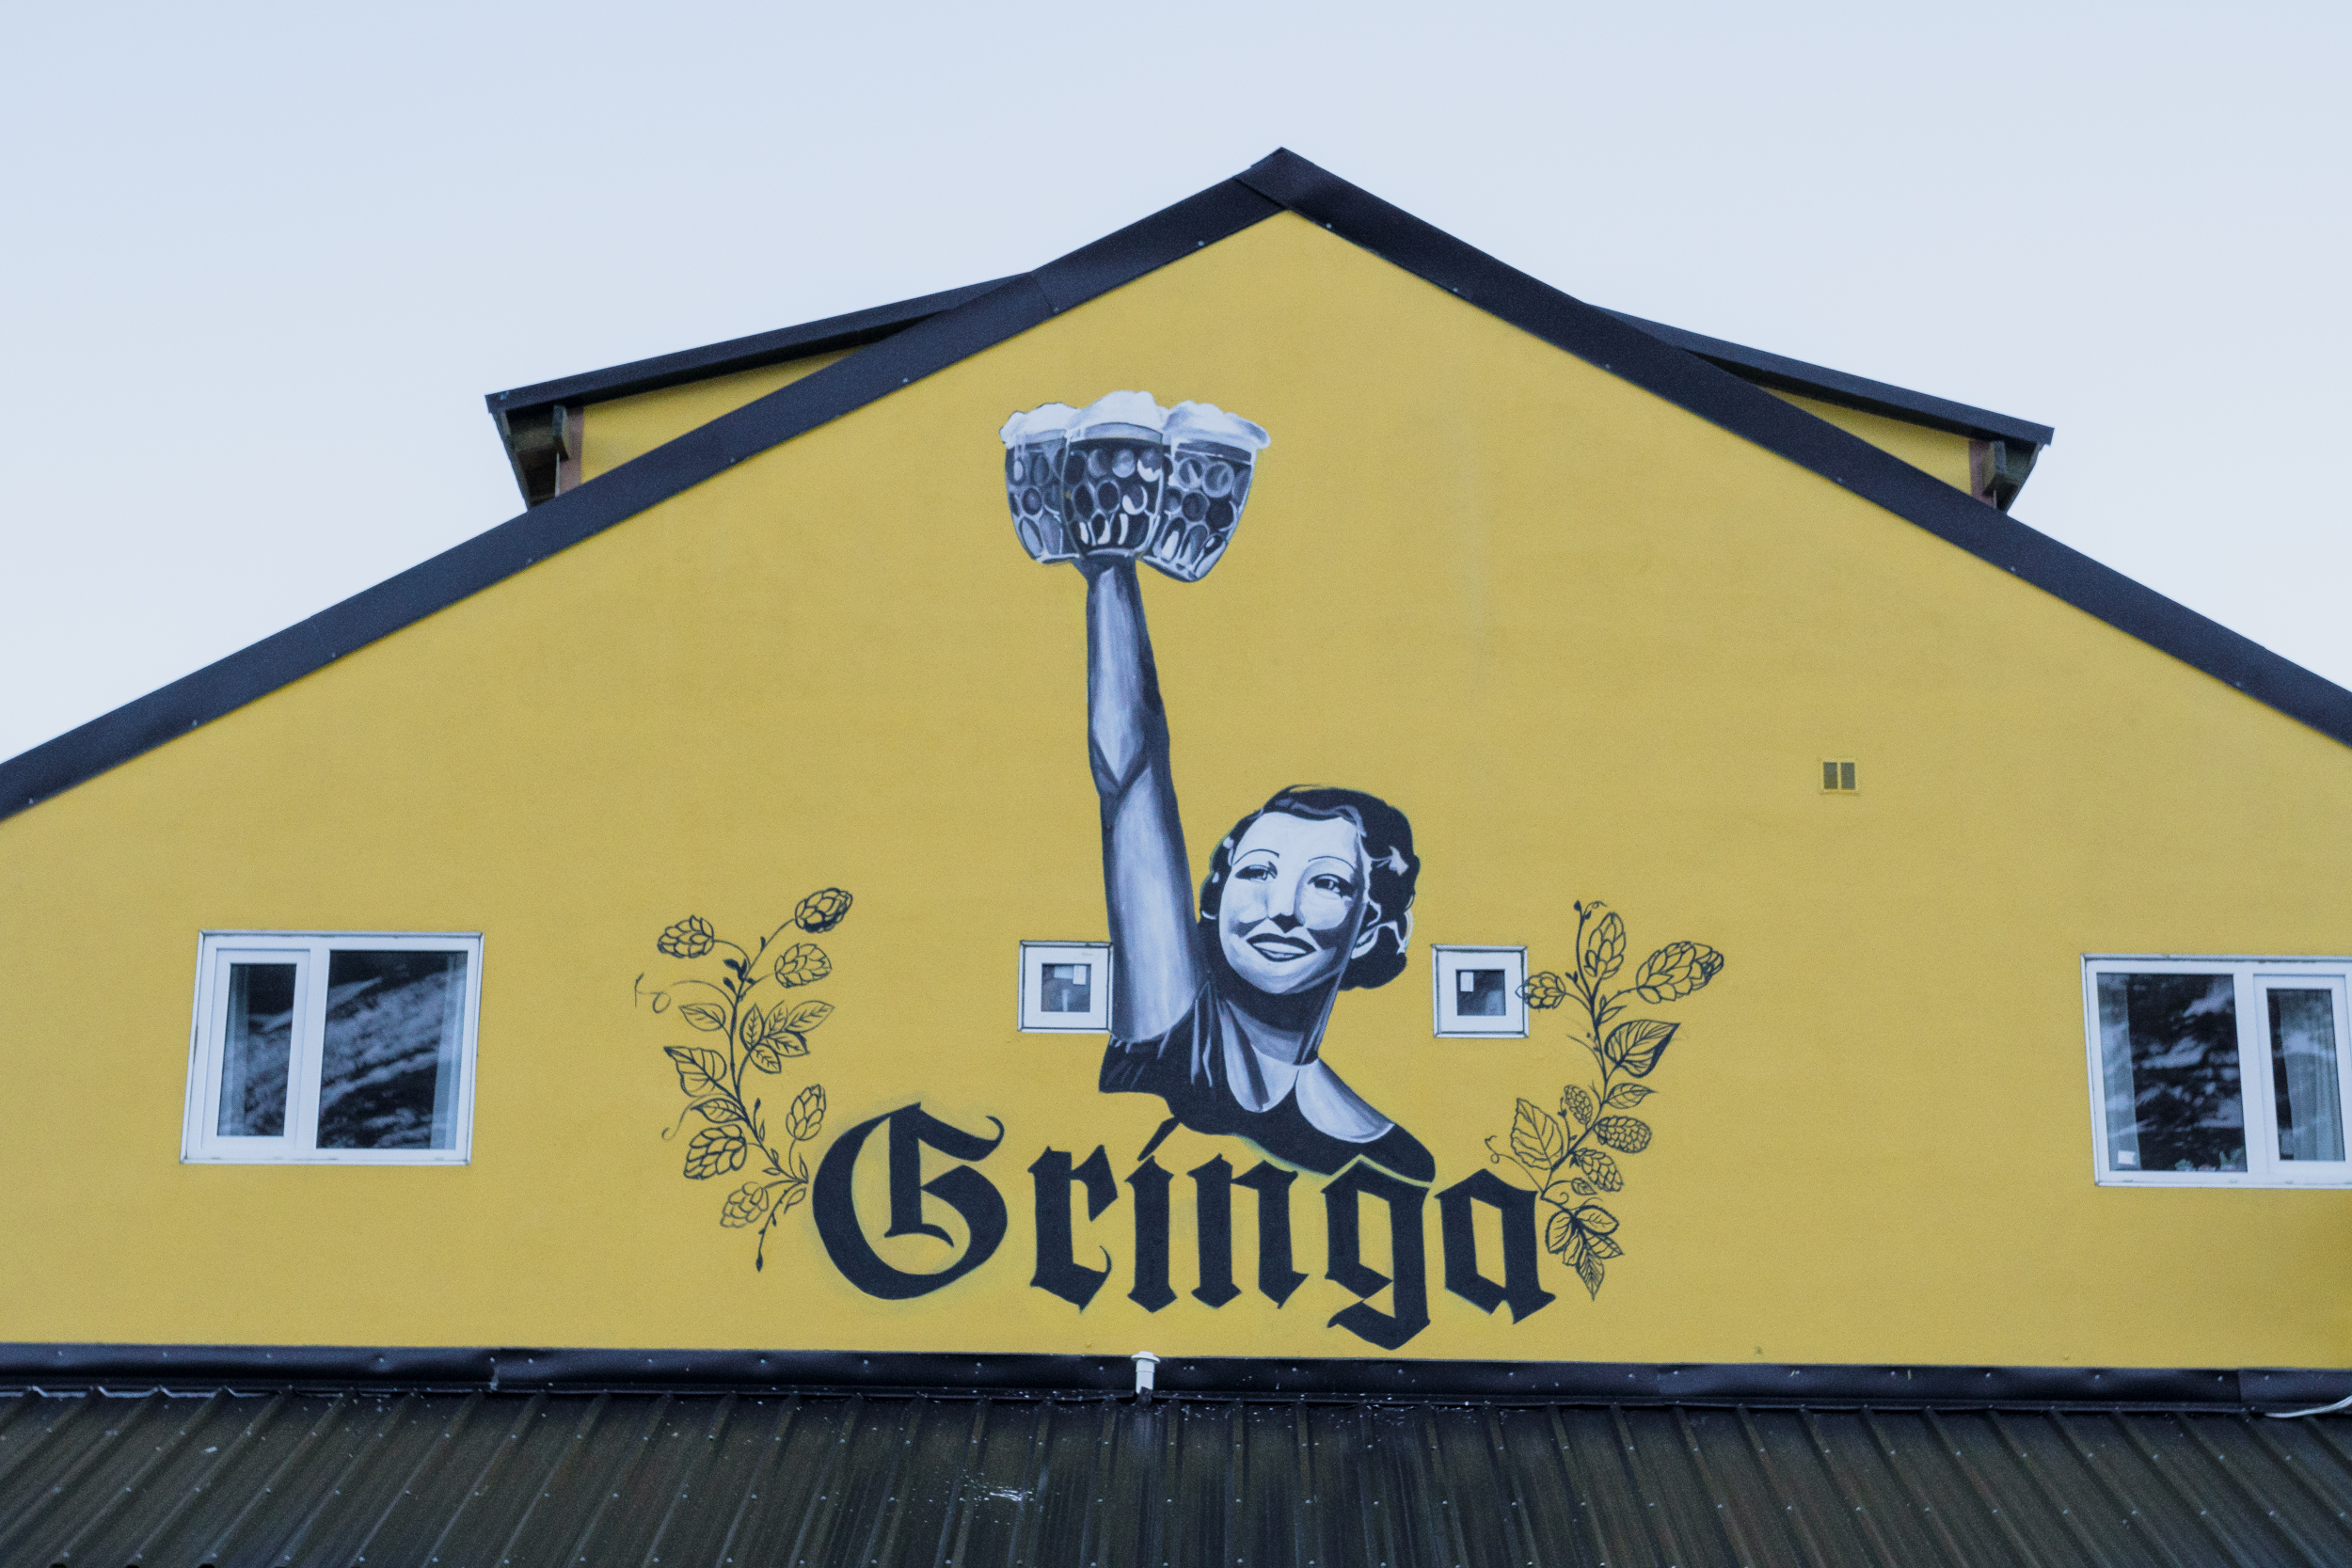 We found good pizza and great beer at La Gringa.